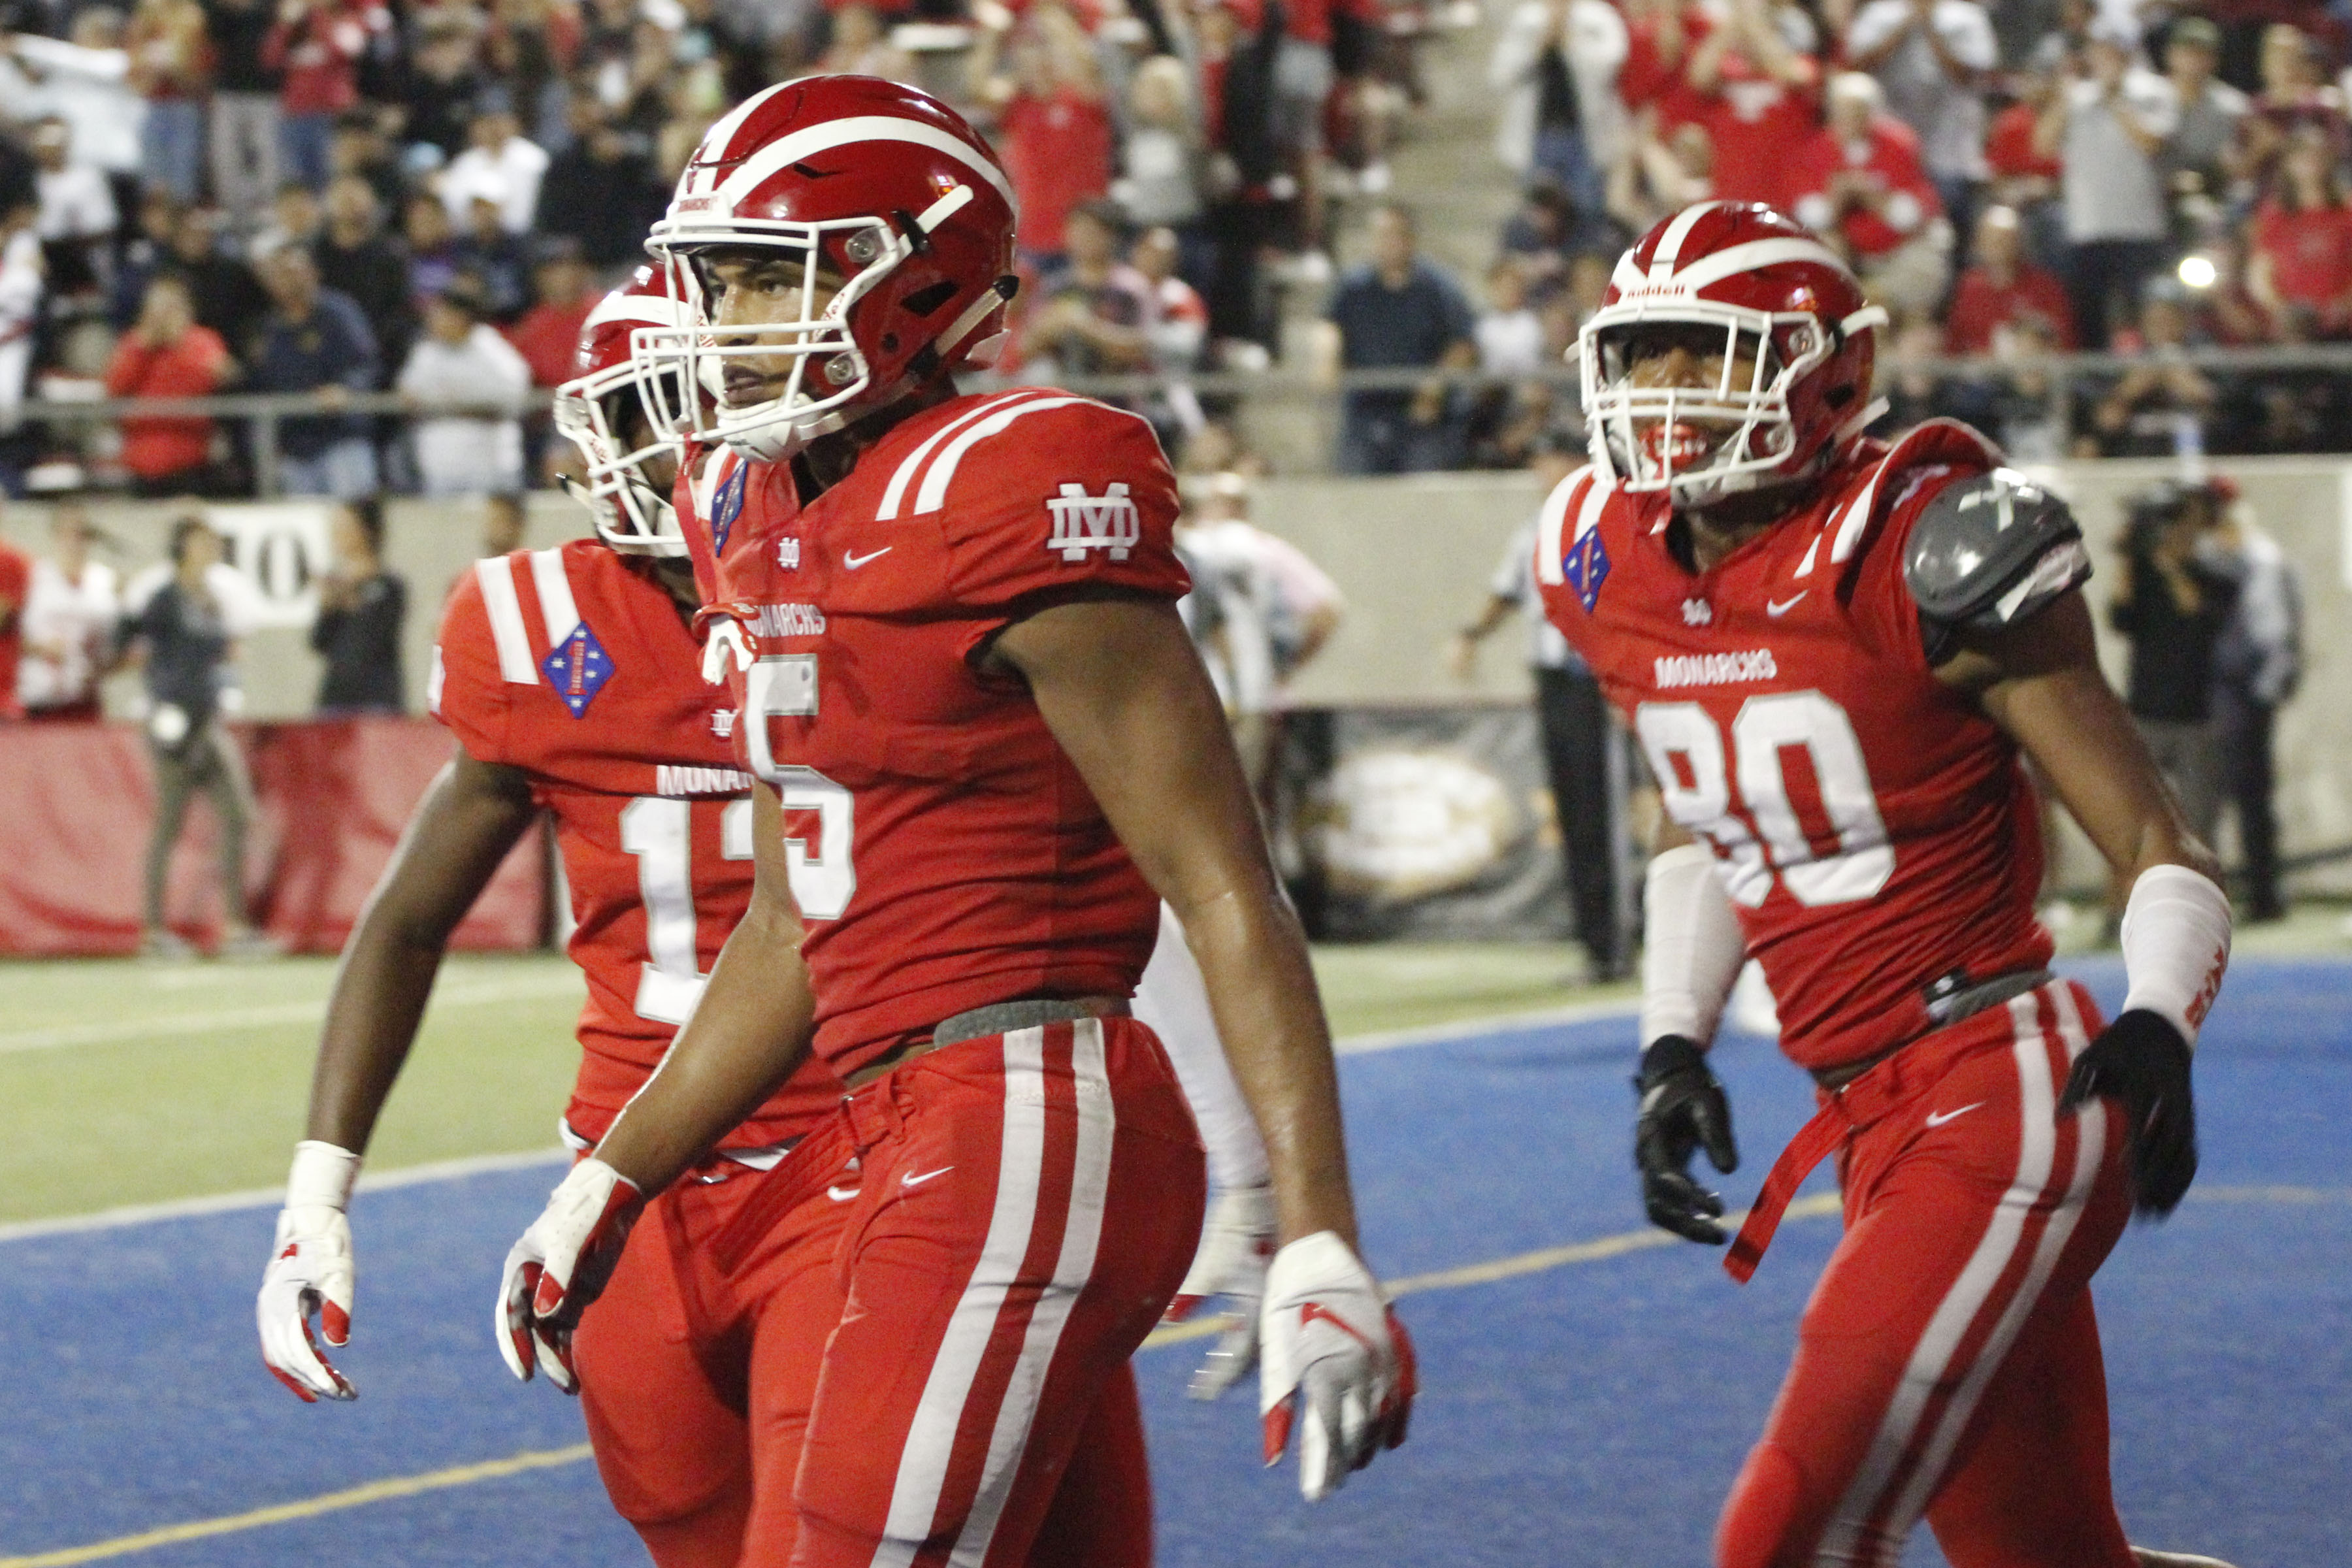 Mater Dei Stuns No 1 Img Academy 28 24 With Last Minute Touchdown